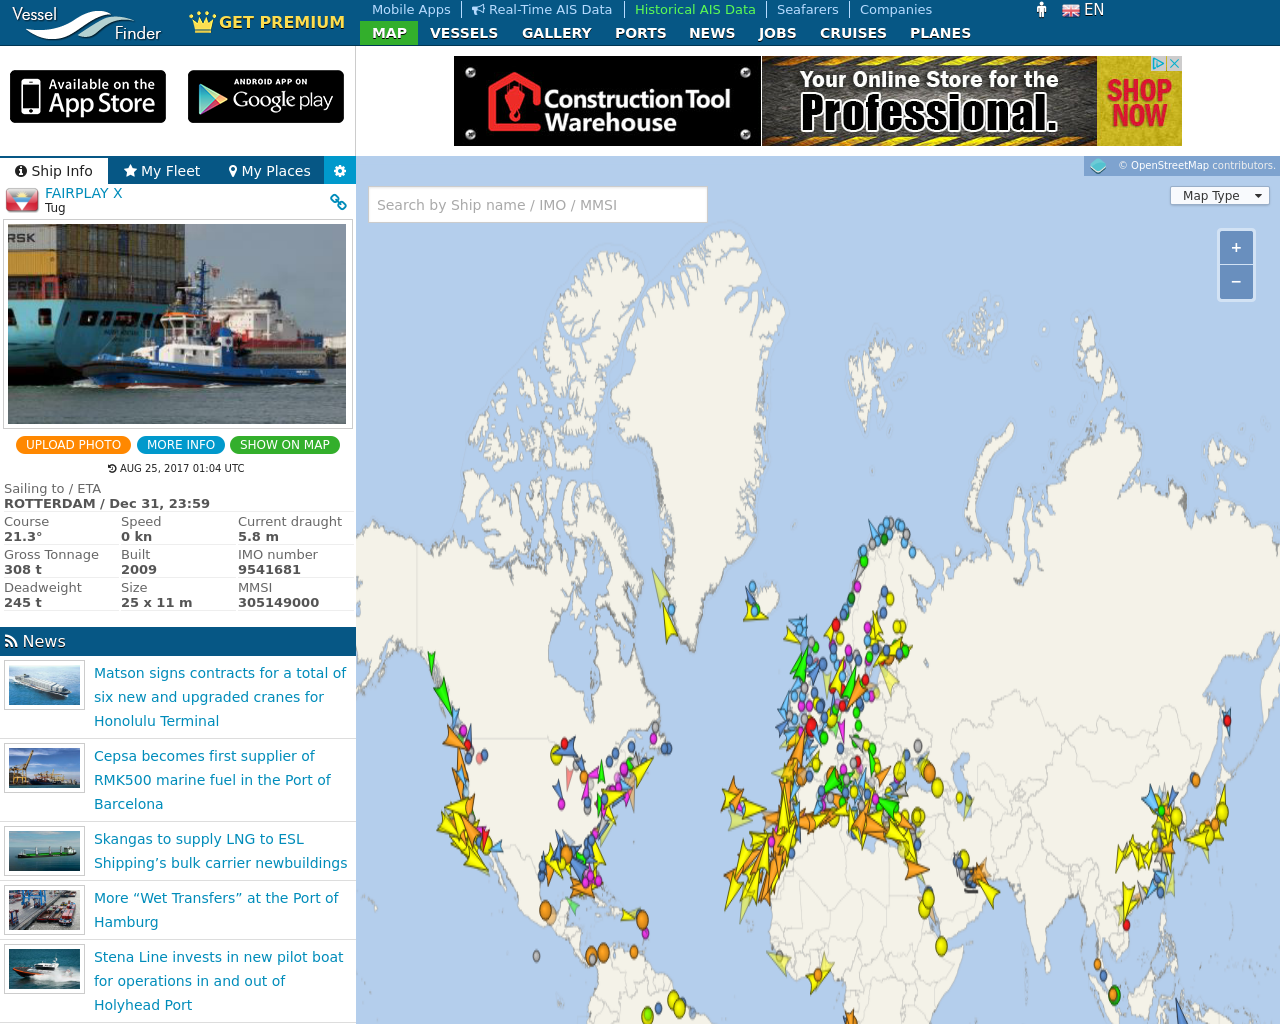 Vessel-Finder-Advertising-Reviews-Pricing